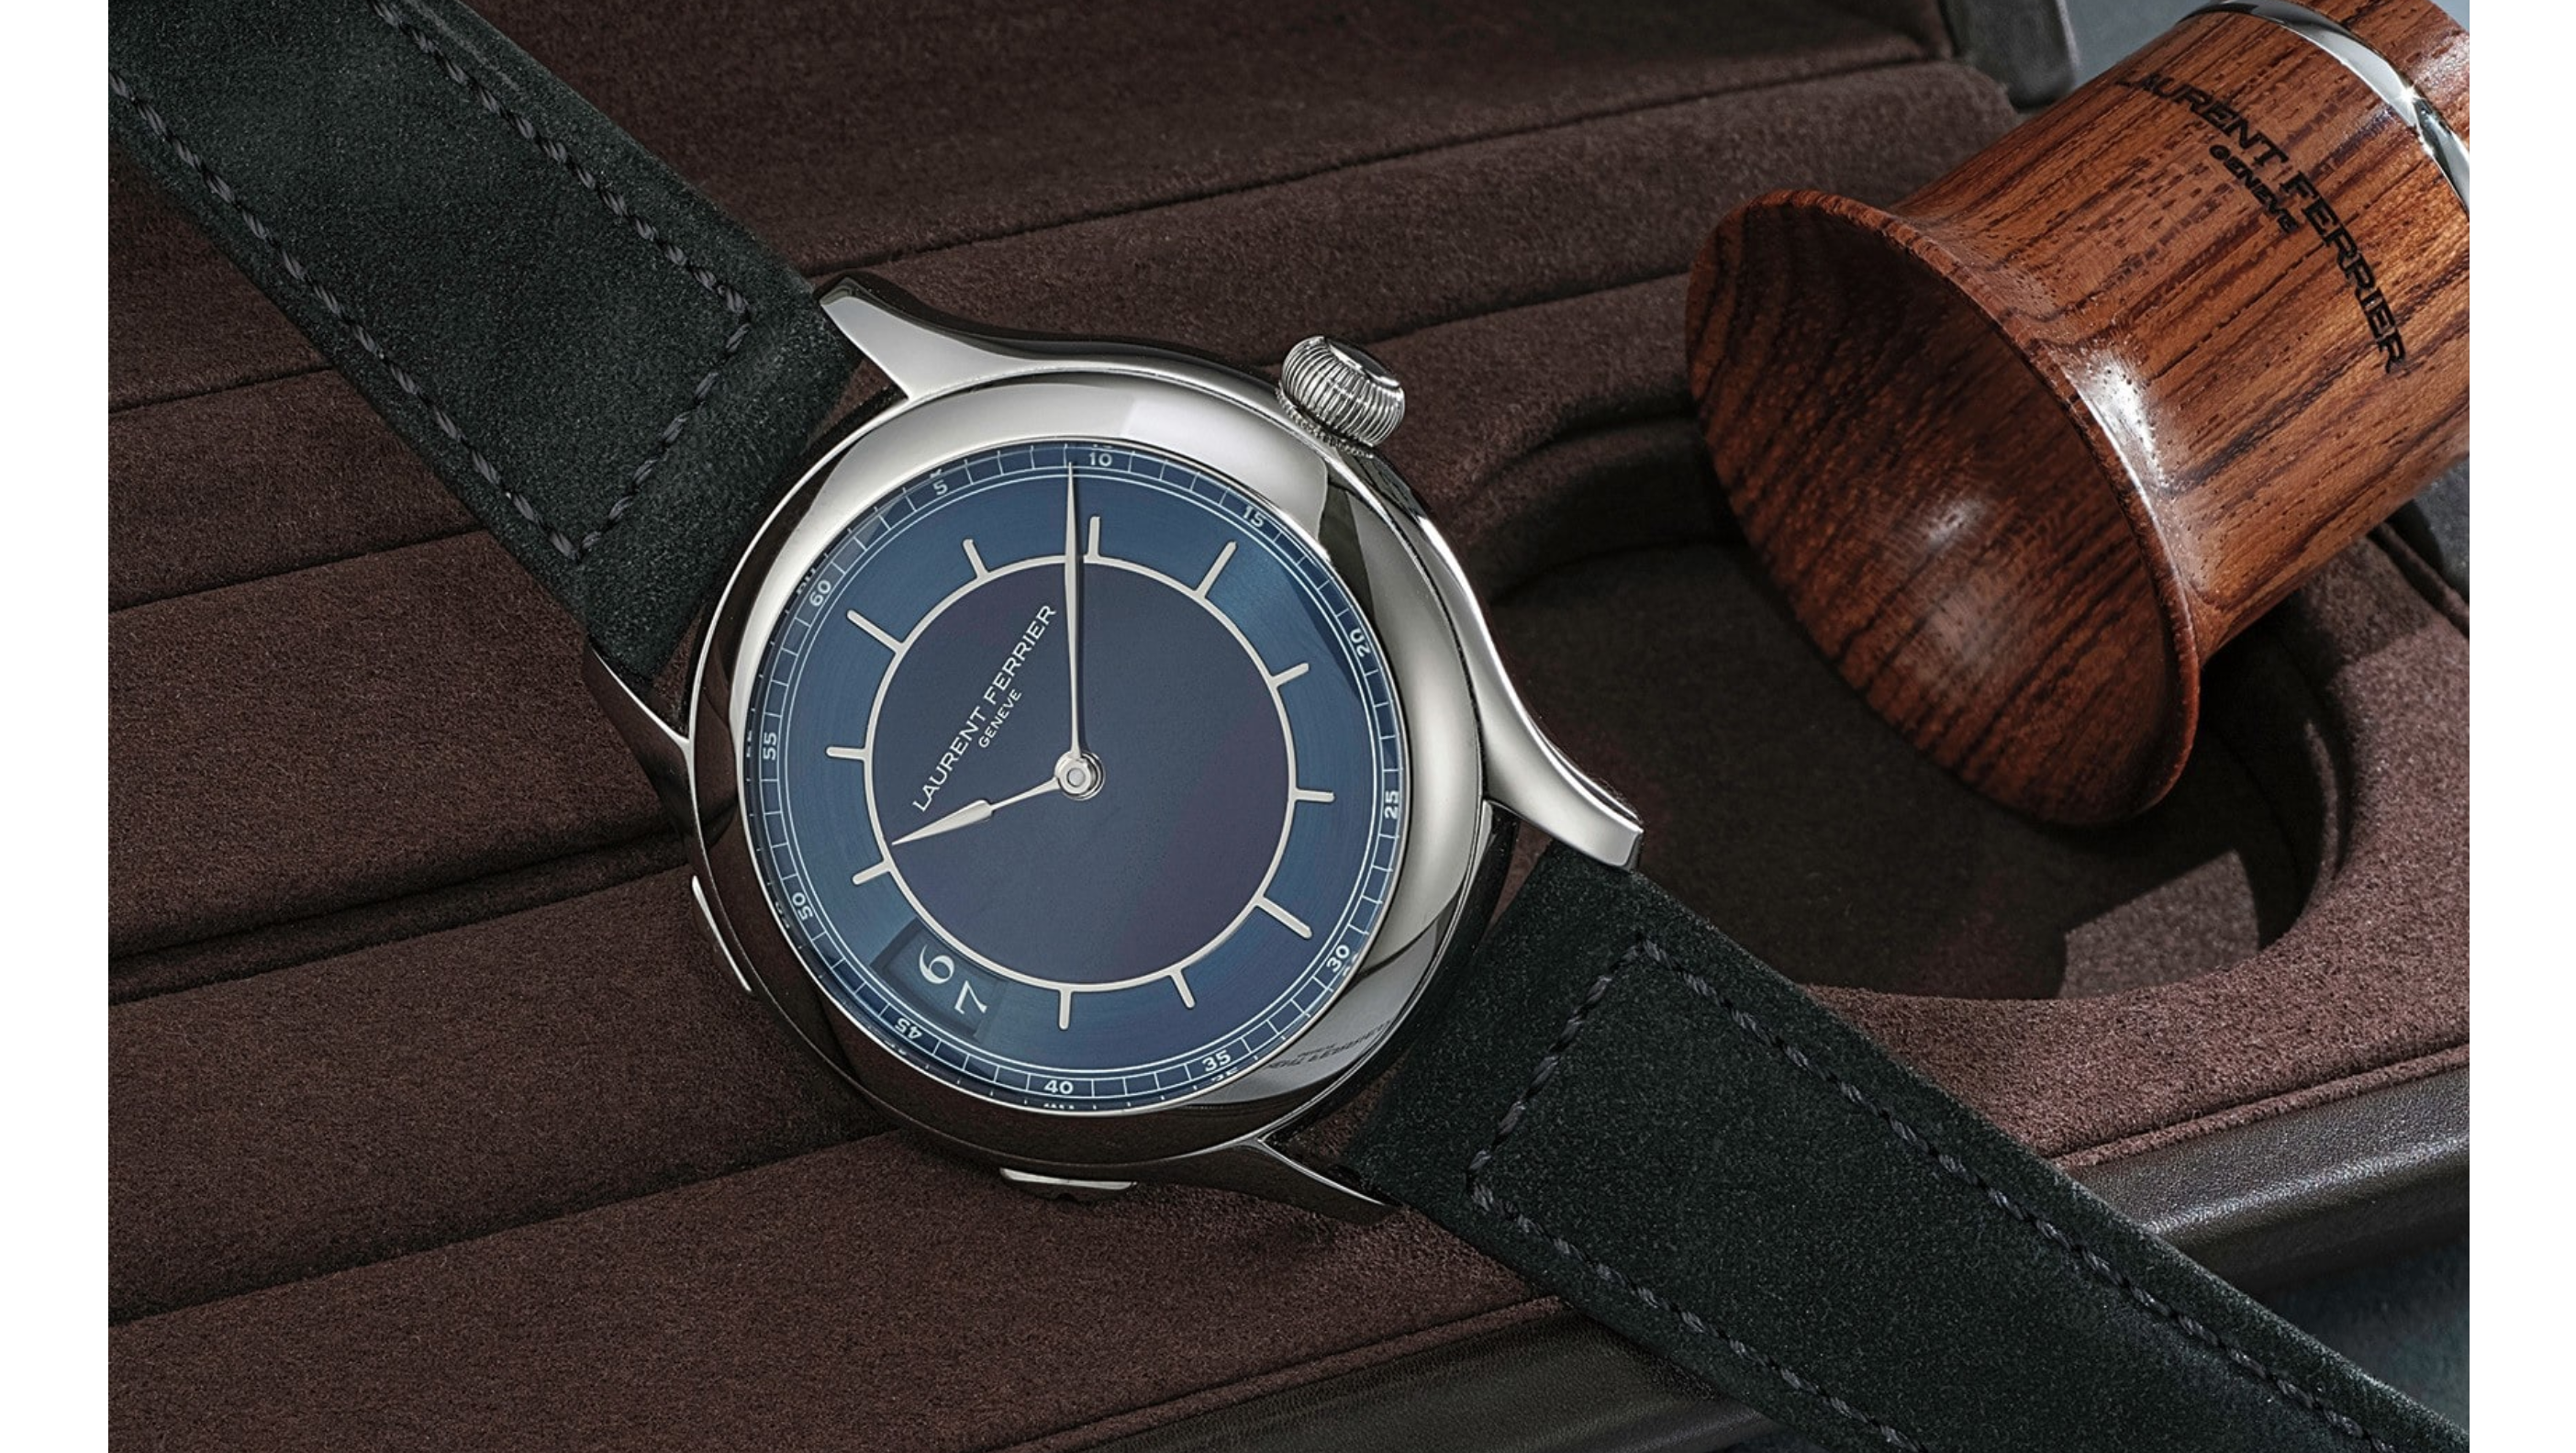 In The Shop – A Laurent Ferrier Traveller Limited Edition For HODINKEE Sold For 18% Above Retail At The Phillips Geneva Watch Auction: Eight Laurent Ferrier